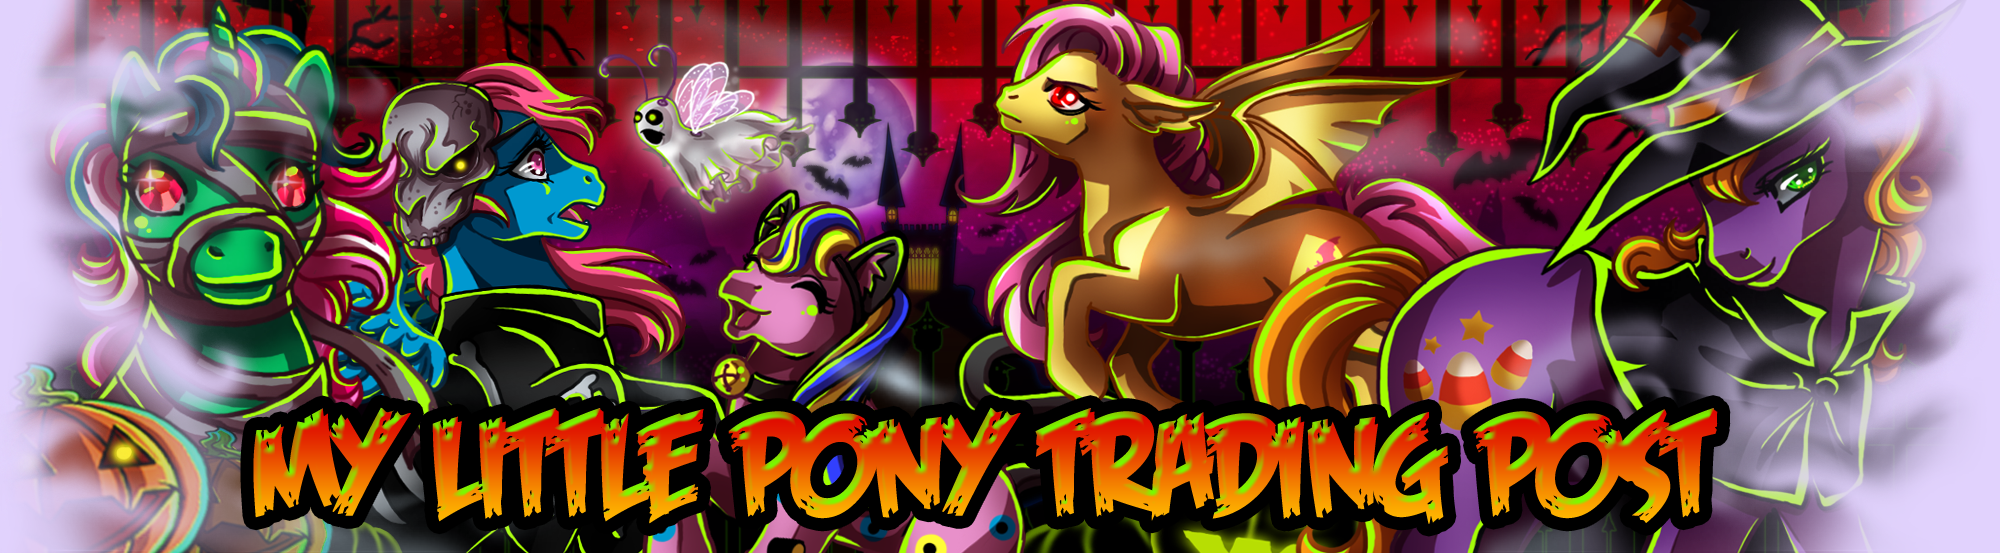 My Little Pony Trading Post